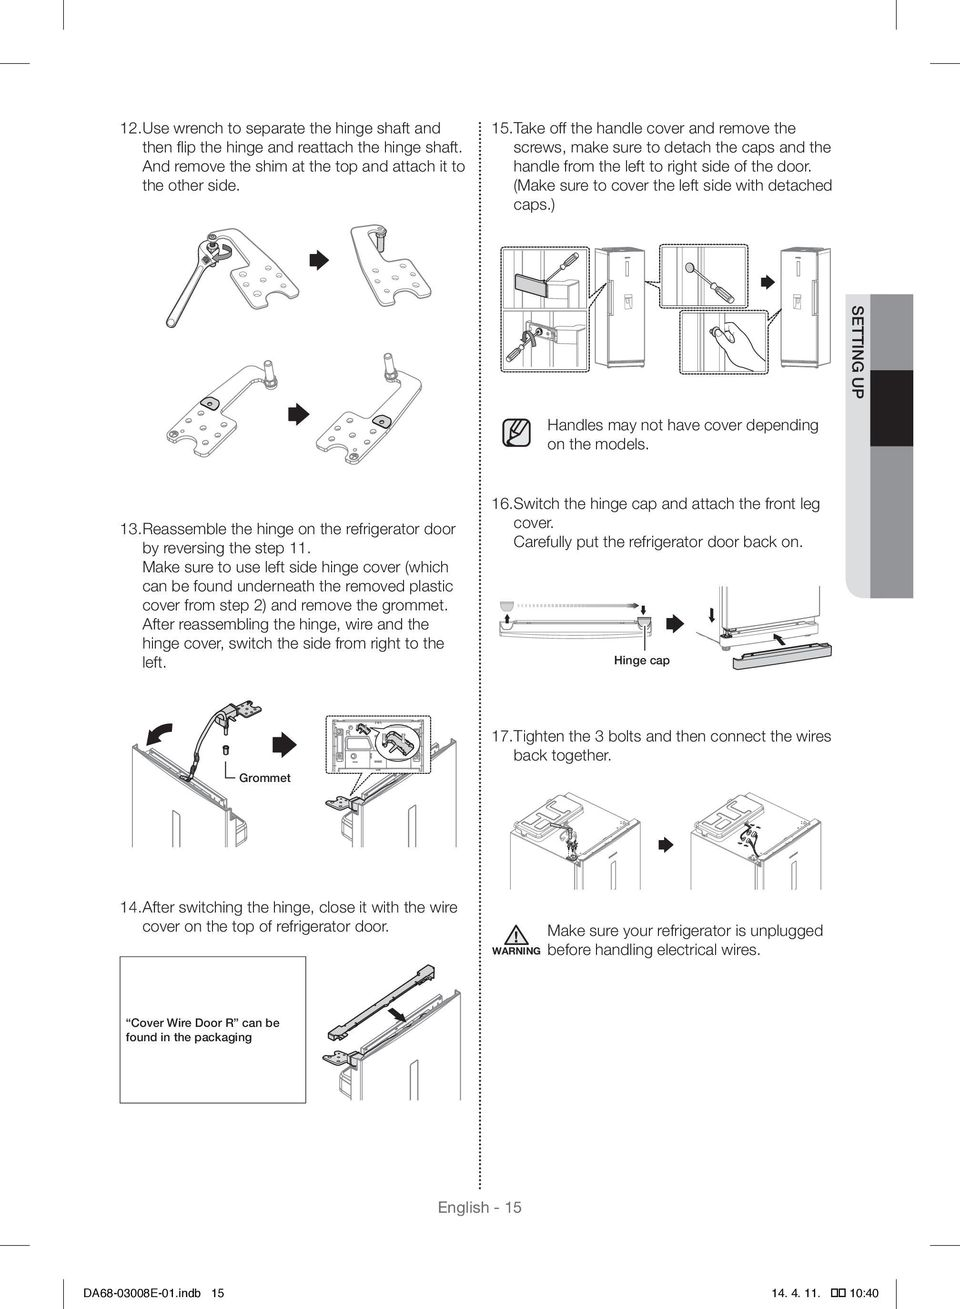 ) setting up Handles may not have cover depending on the models. 13. Reassemble the hinge on the refrigerator door by reversing the step 11.